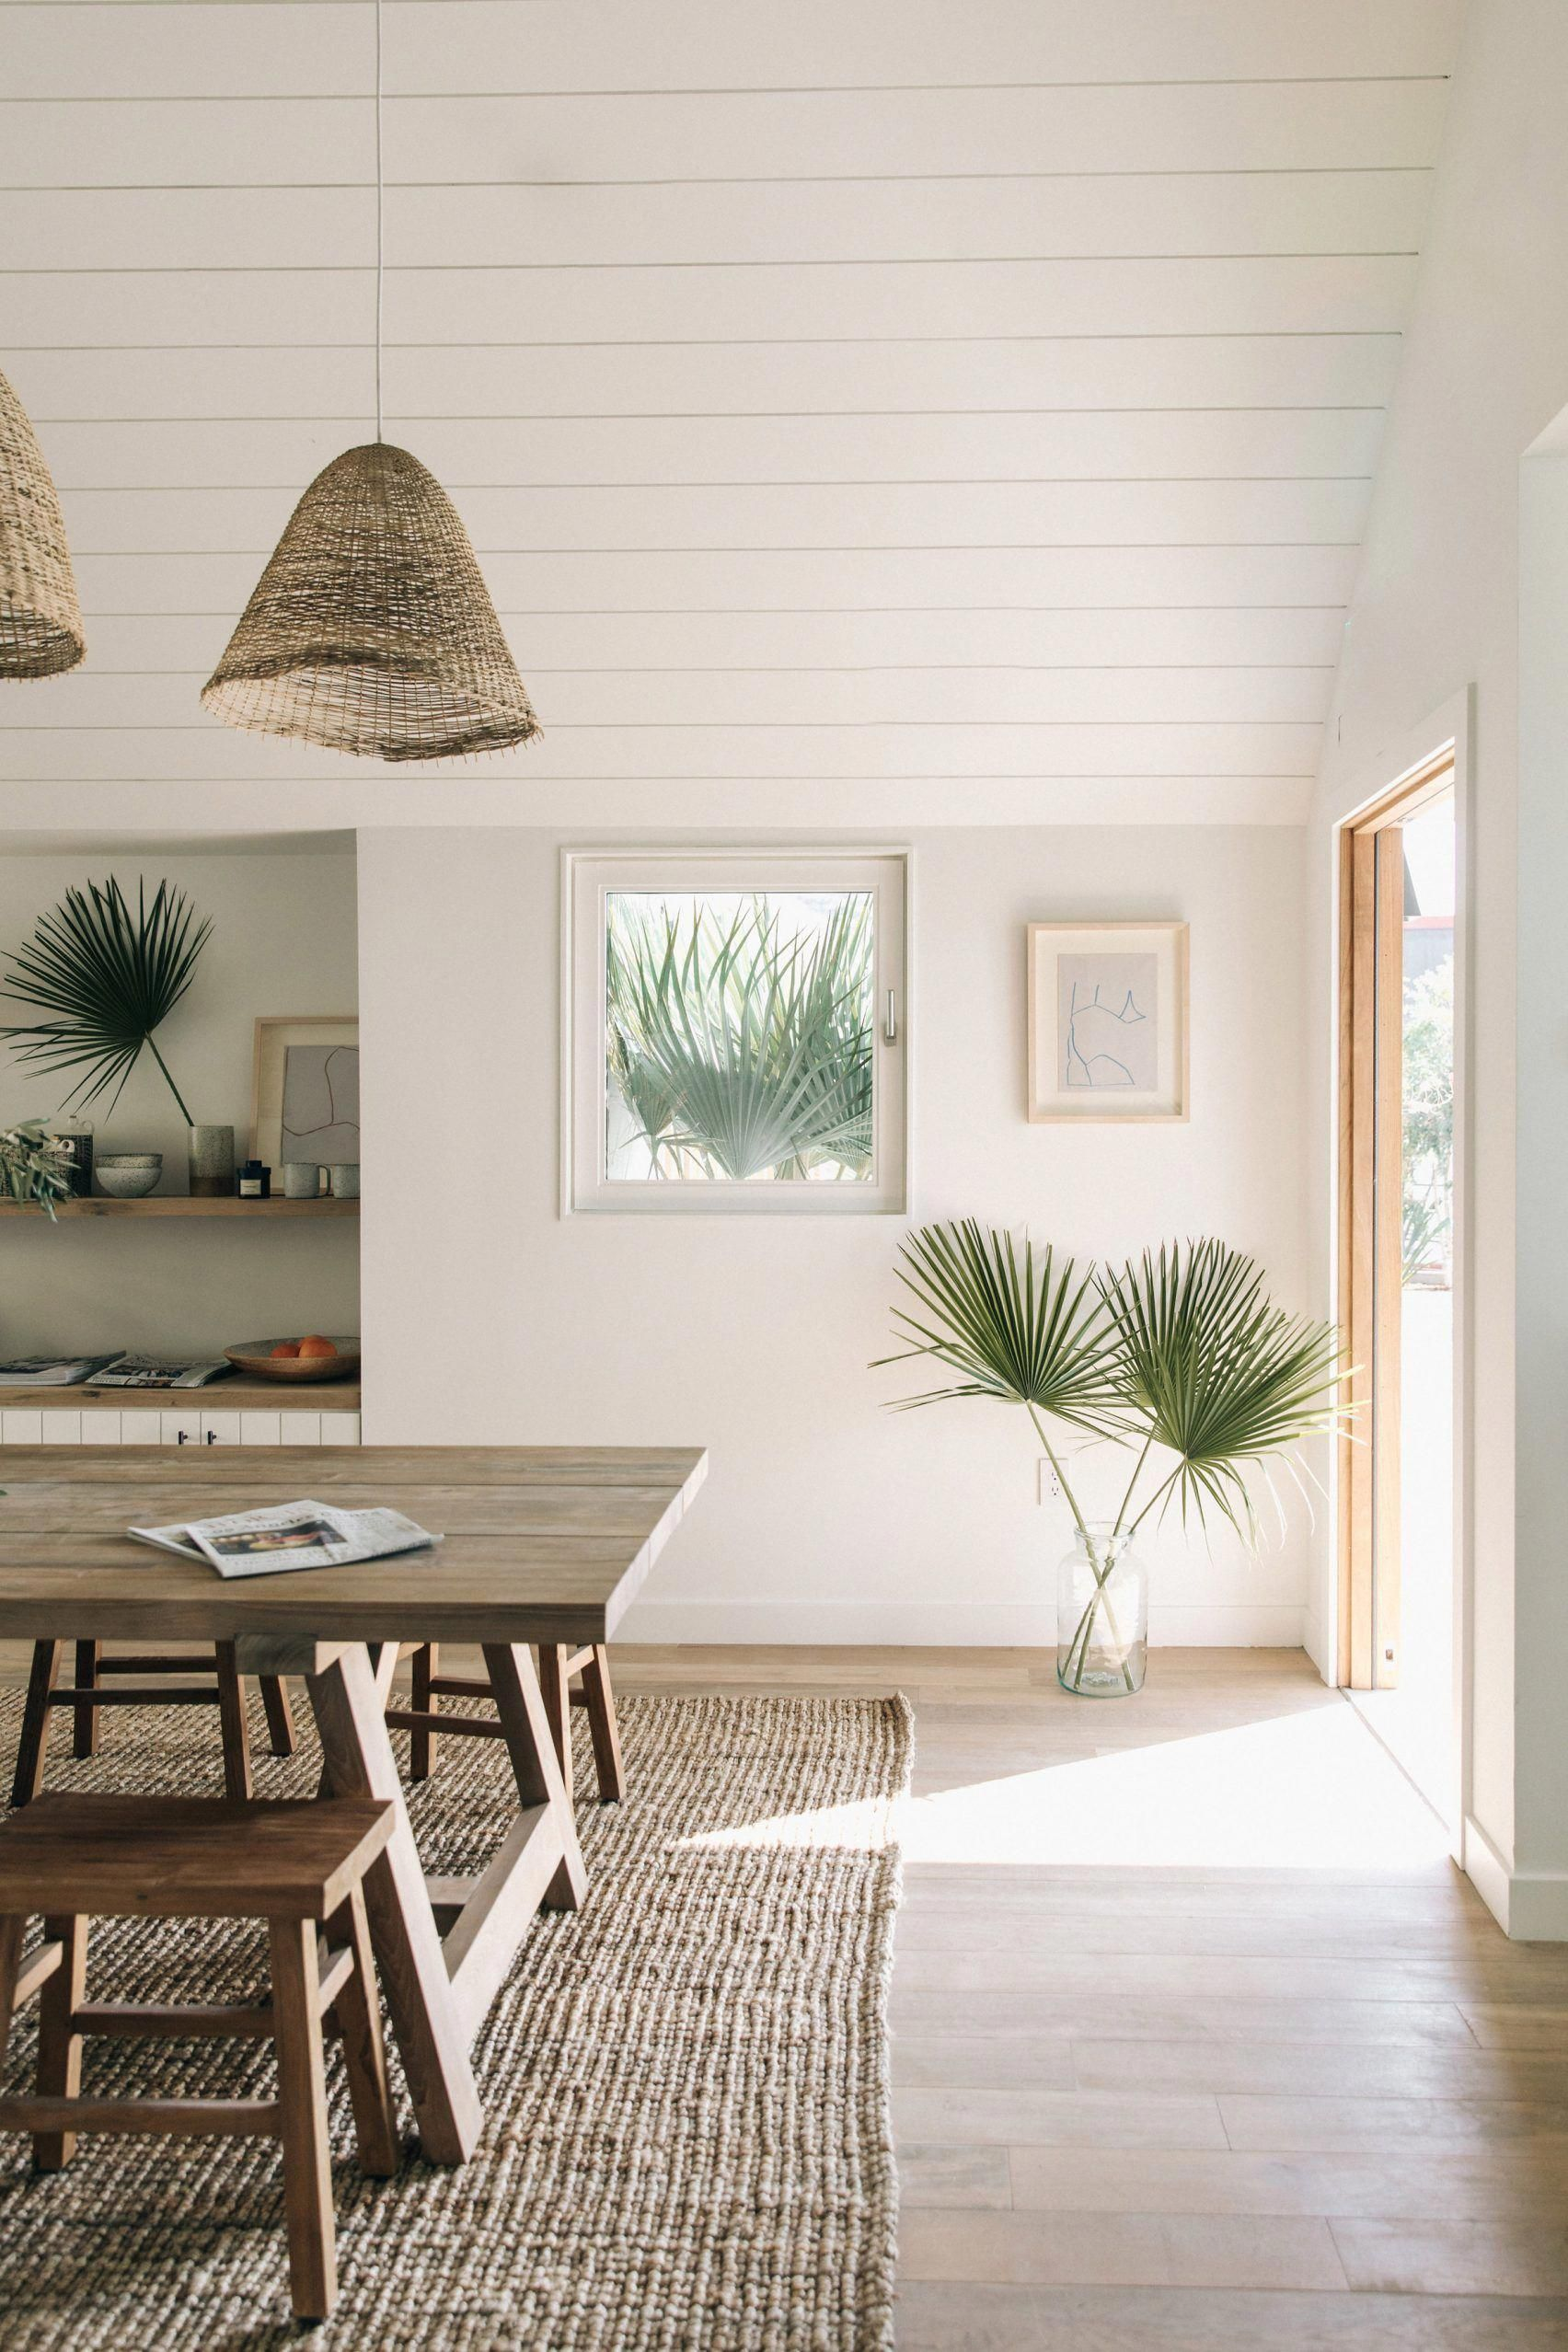 Photo matthew goodwin sweet home make kids room decoration nursery also suunday on instagram  cthe ideal place for brunching via rh pinterest